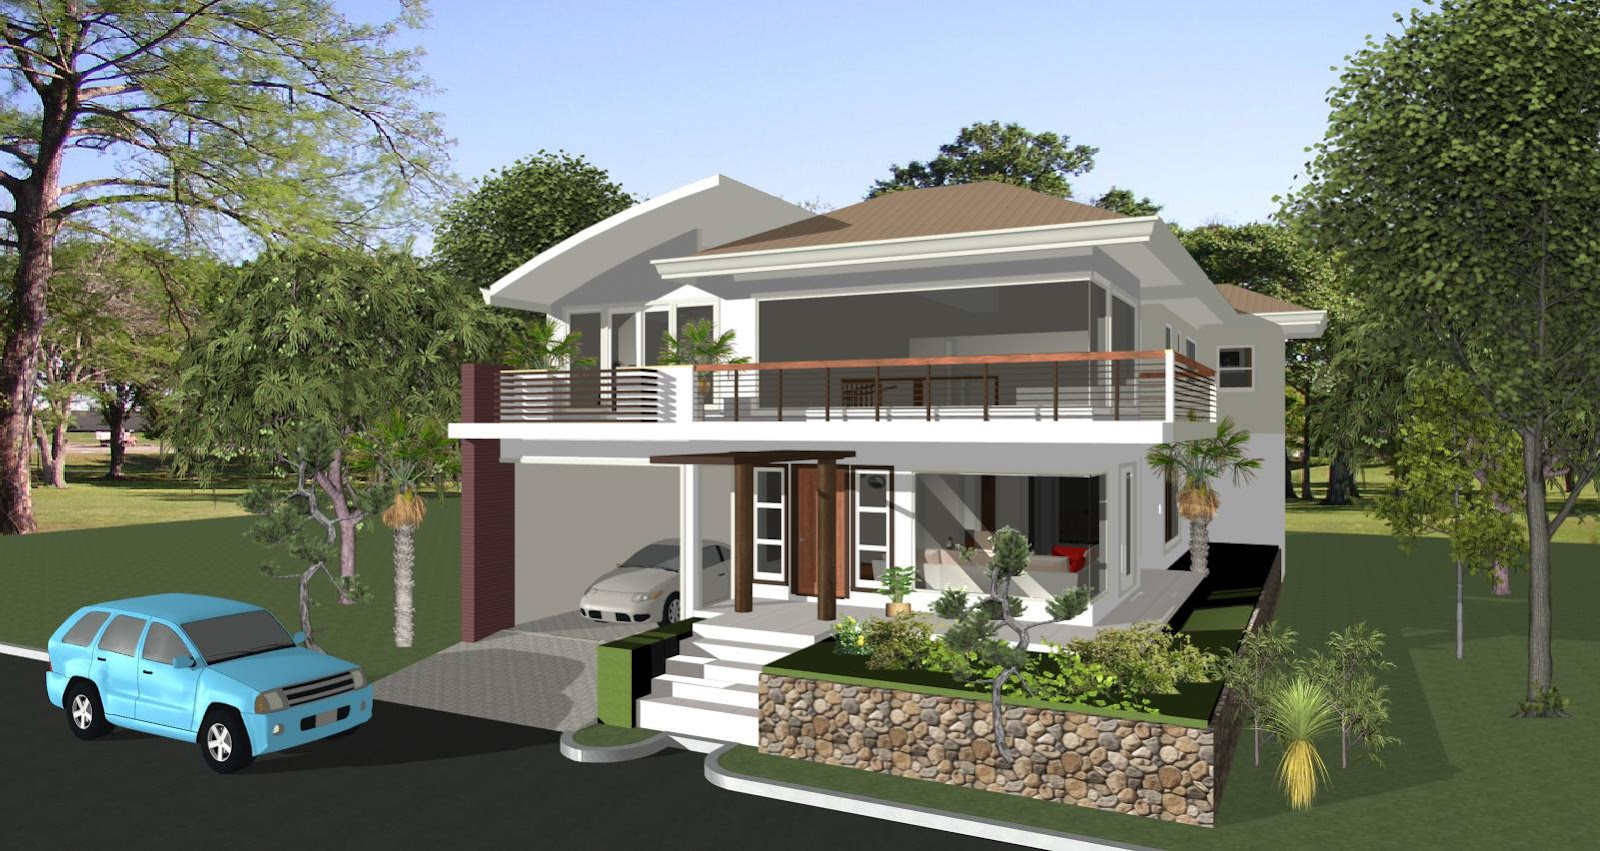 House designs philippines architect bill house plans for Architecture design of house